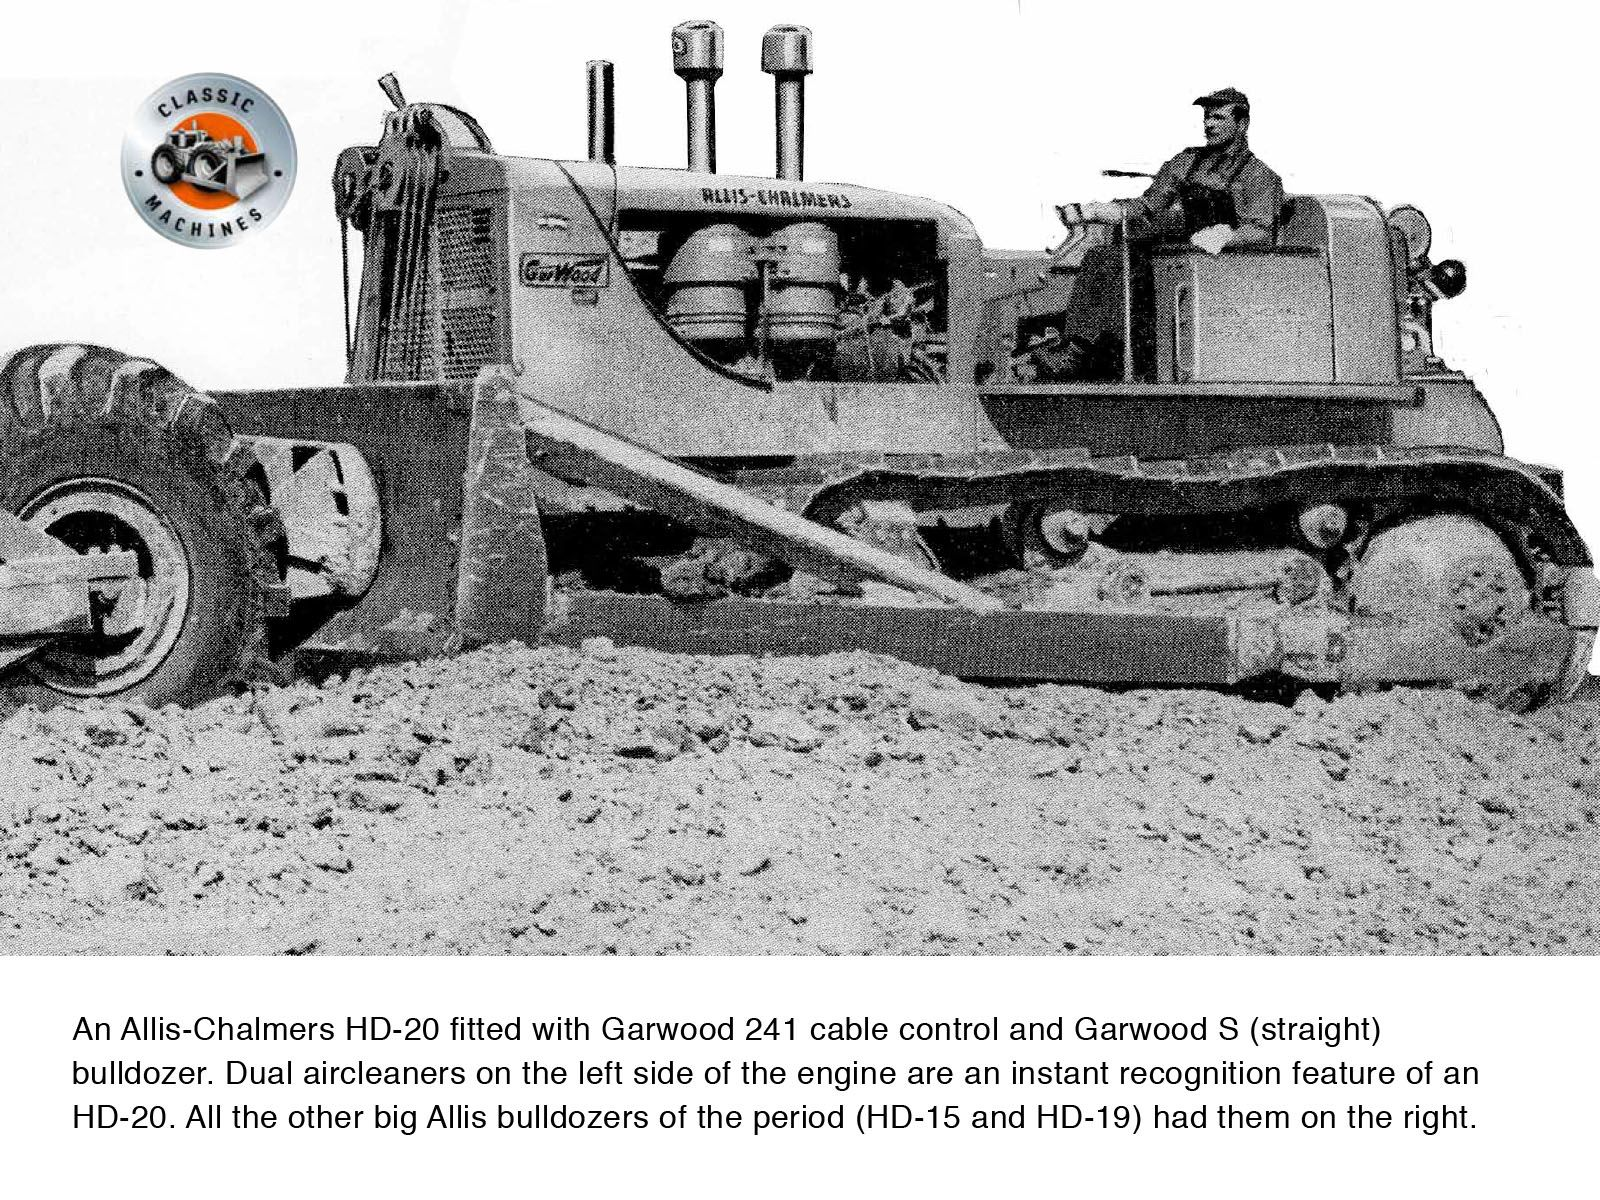 An Allis-Chalmers HD-20 fitted with Garwood S bulldozer